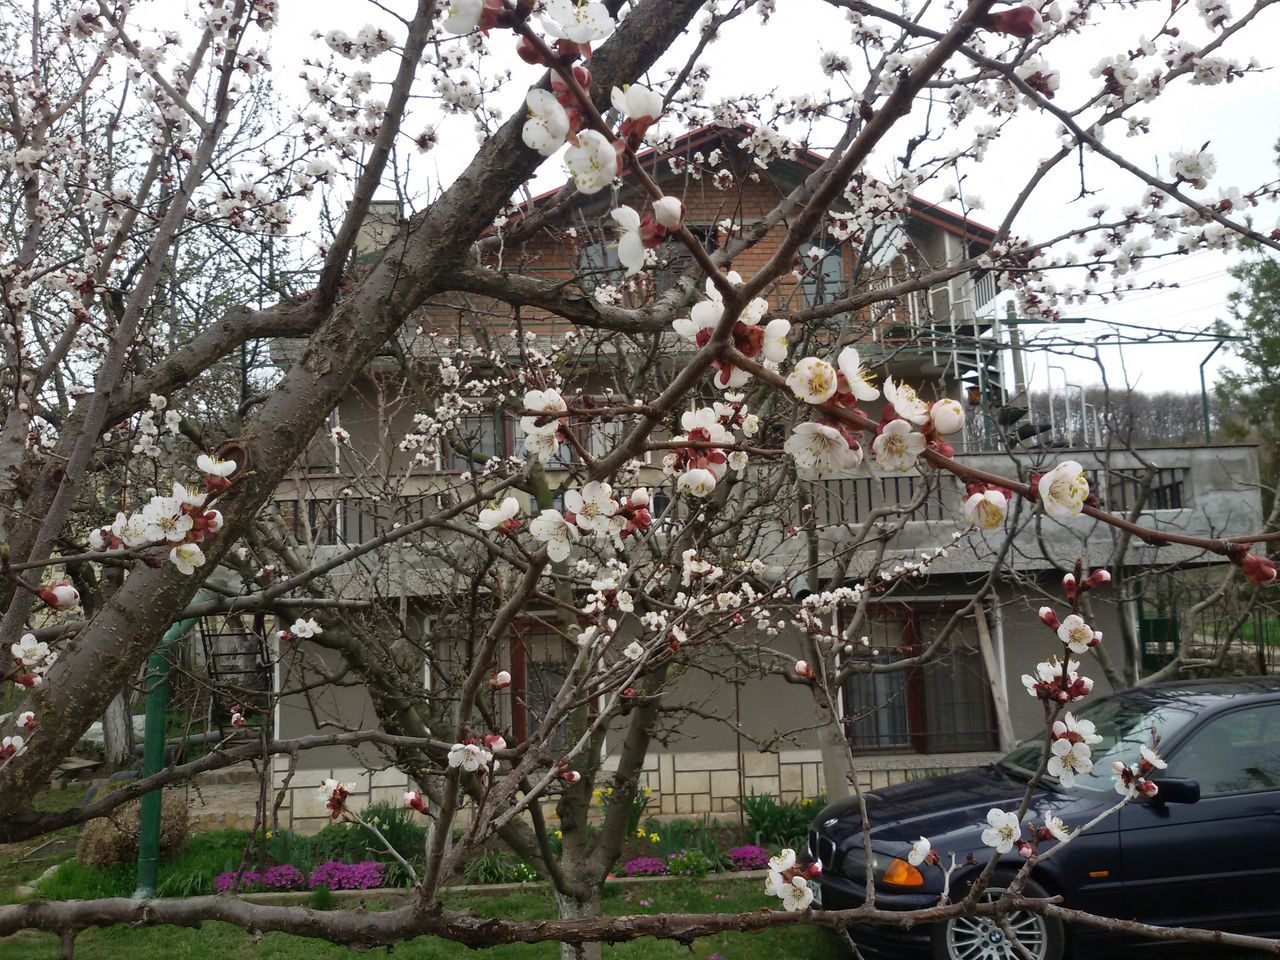 tree, flower, branch, blossom, building exterior, architecture, growth, springtime, outdoors, transportation, built structure, city, no people, land vehicle, day, fragility, nature, beauty in nature, sky, freshness